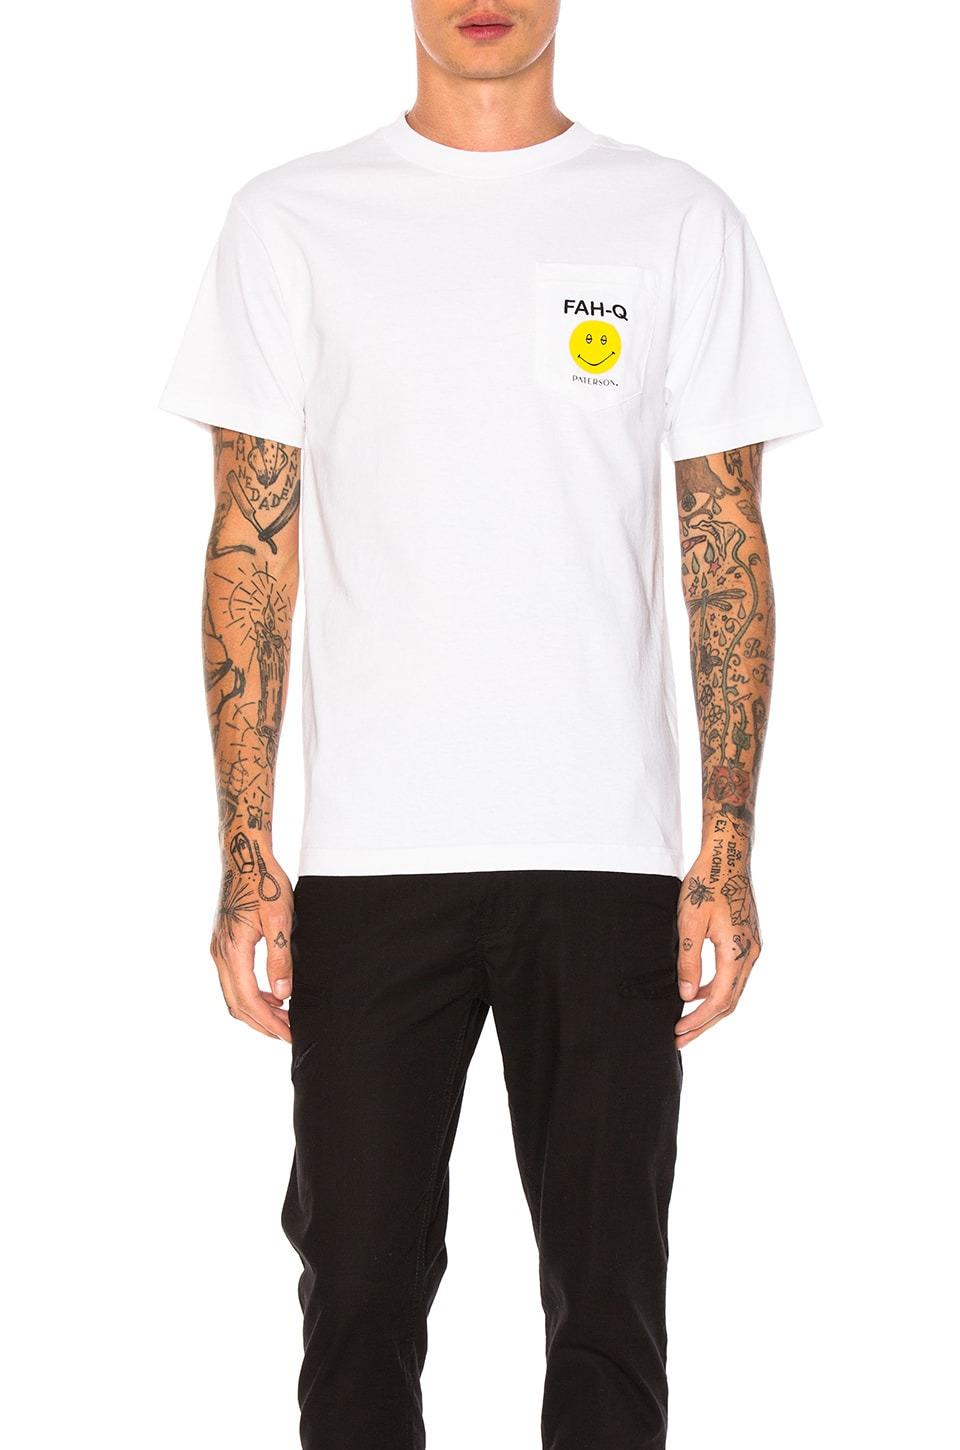 Fah Q Pocket Tee by Paterson